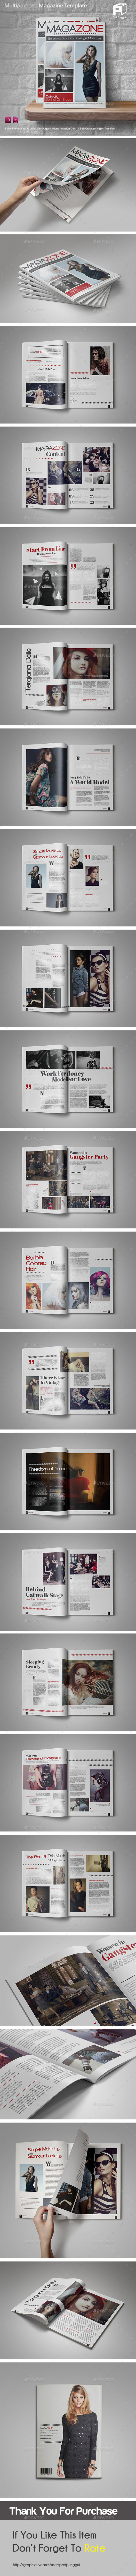 Stylish Magazine Vol.3 - Magazines Print Templates